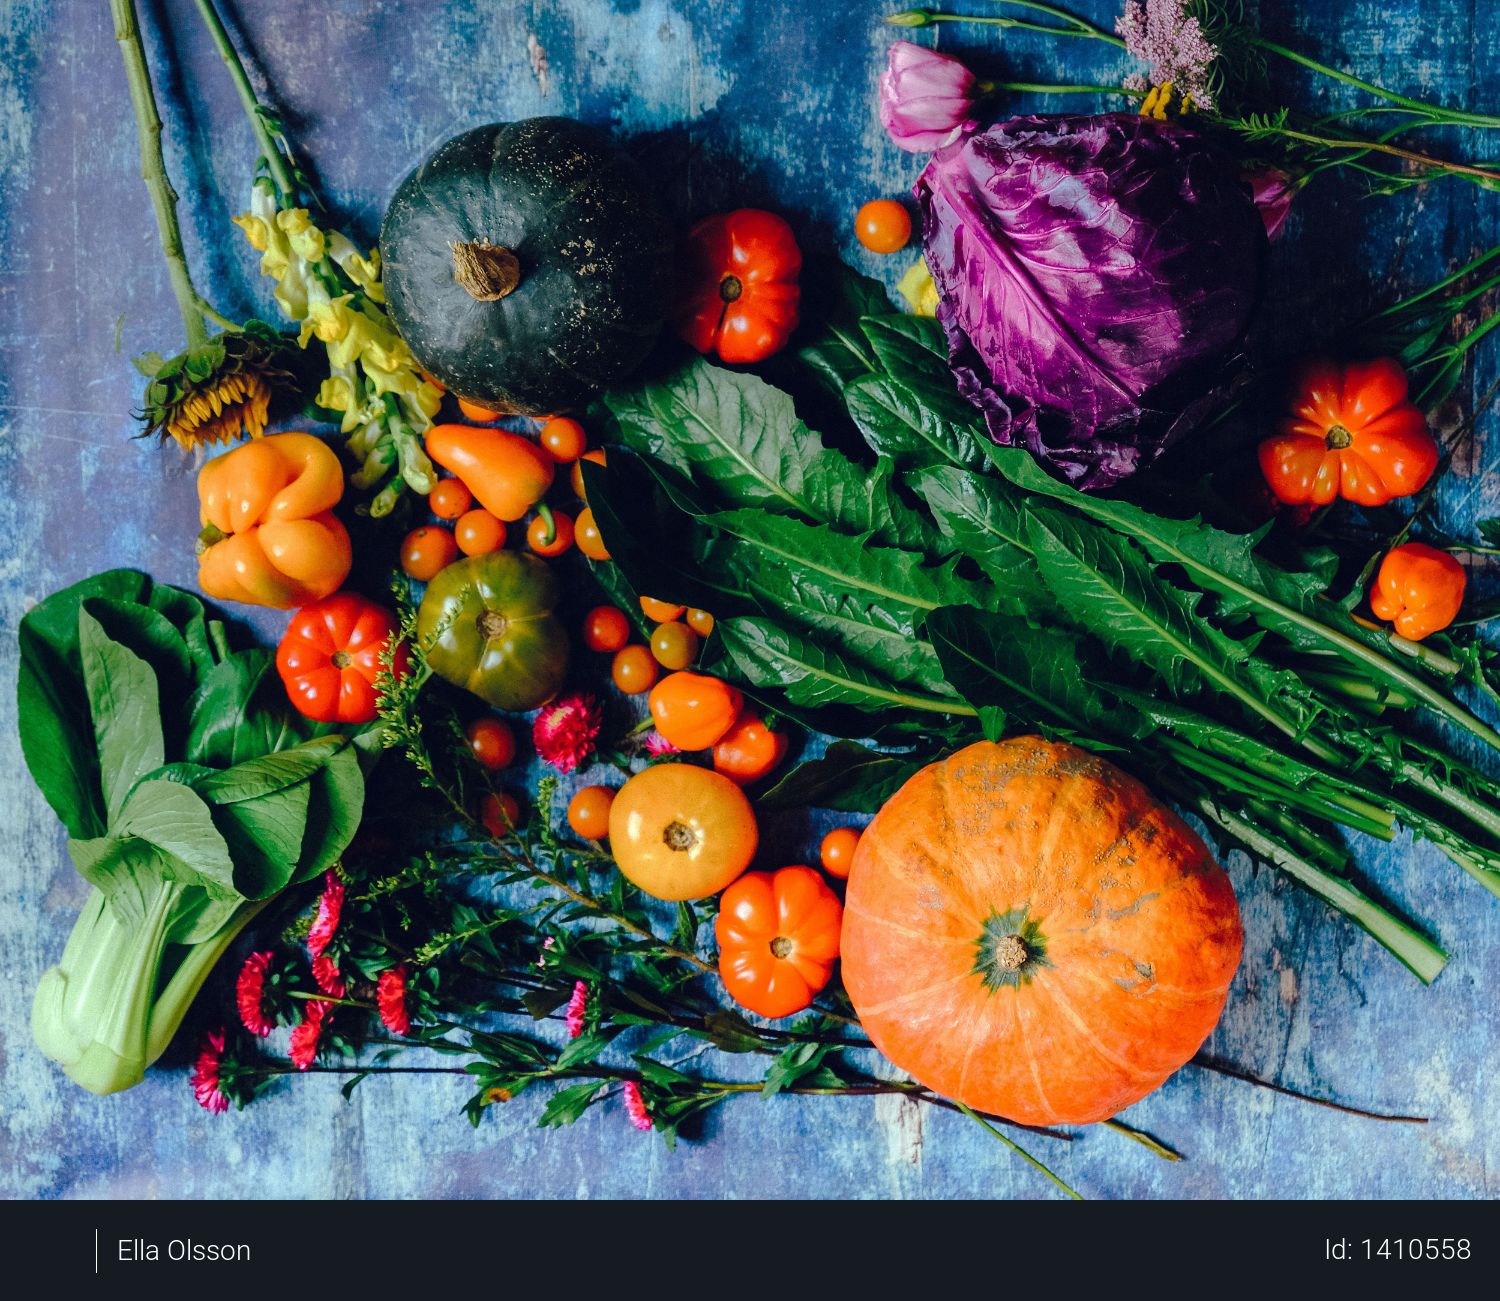 Variety of Vegetables Photo